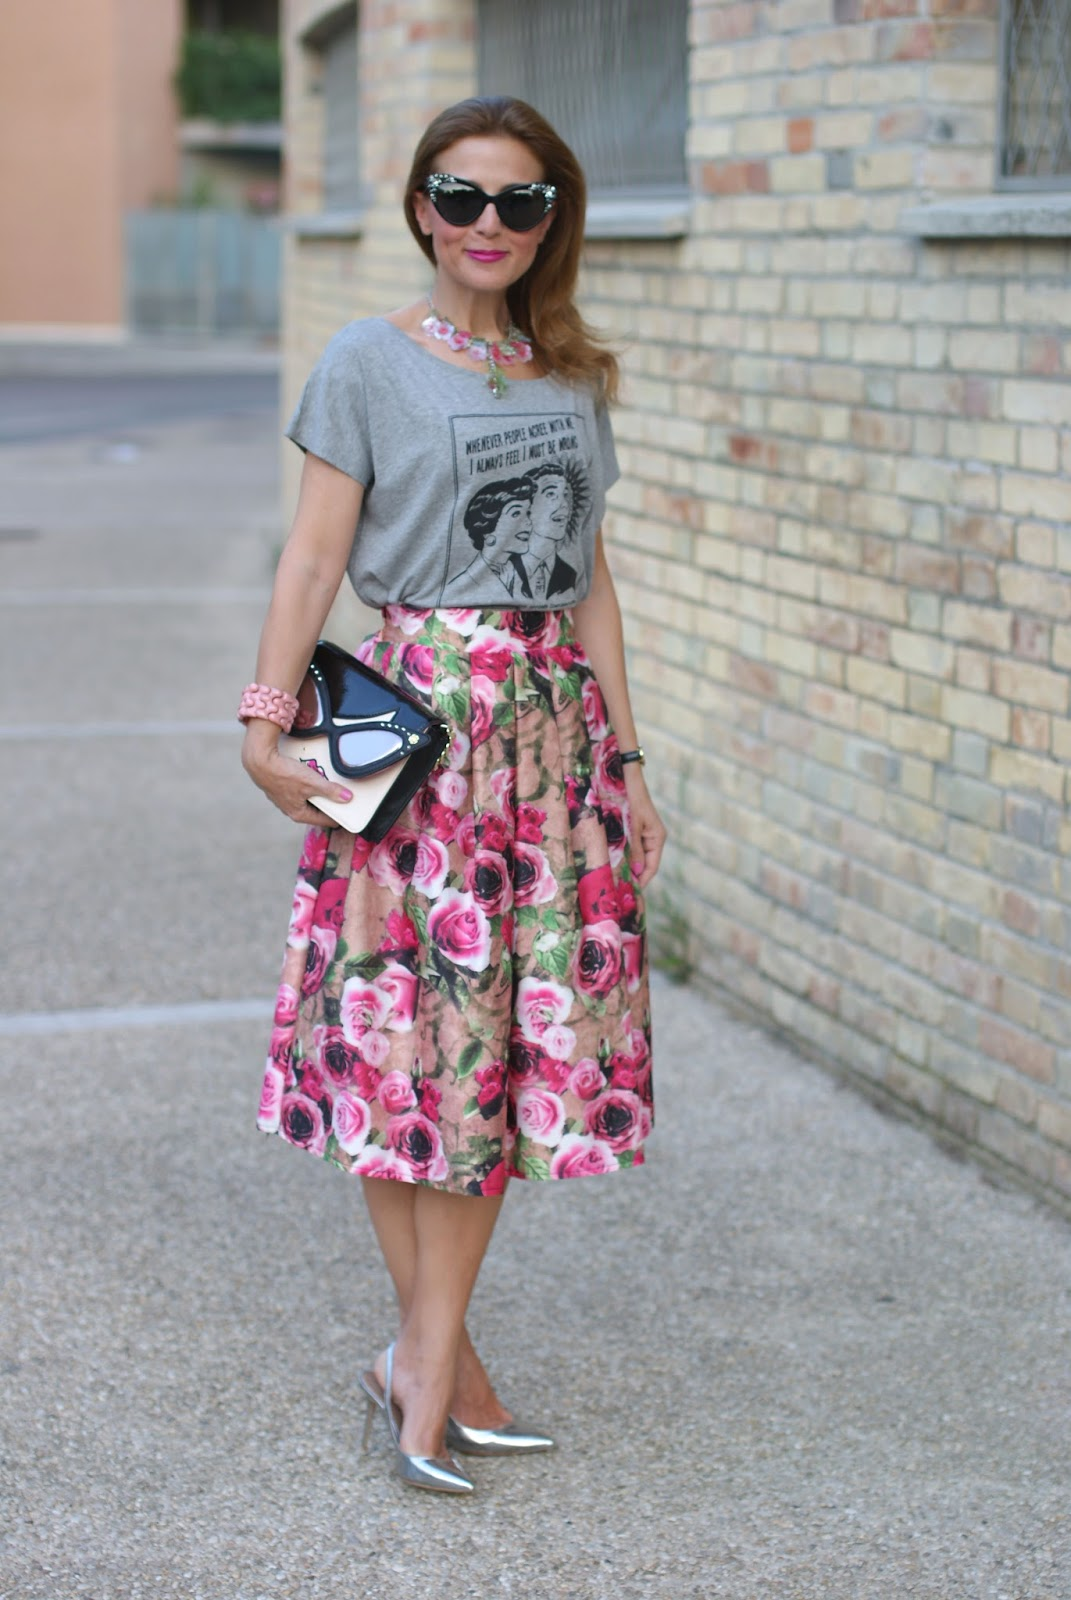 Midi skirt with rose print and Kate Spade clutch on Fashion and Cookies fashion blog, fashion blogger style